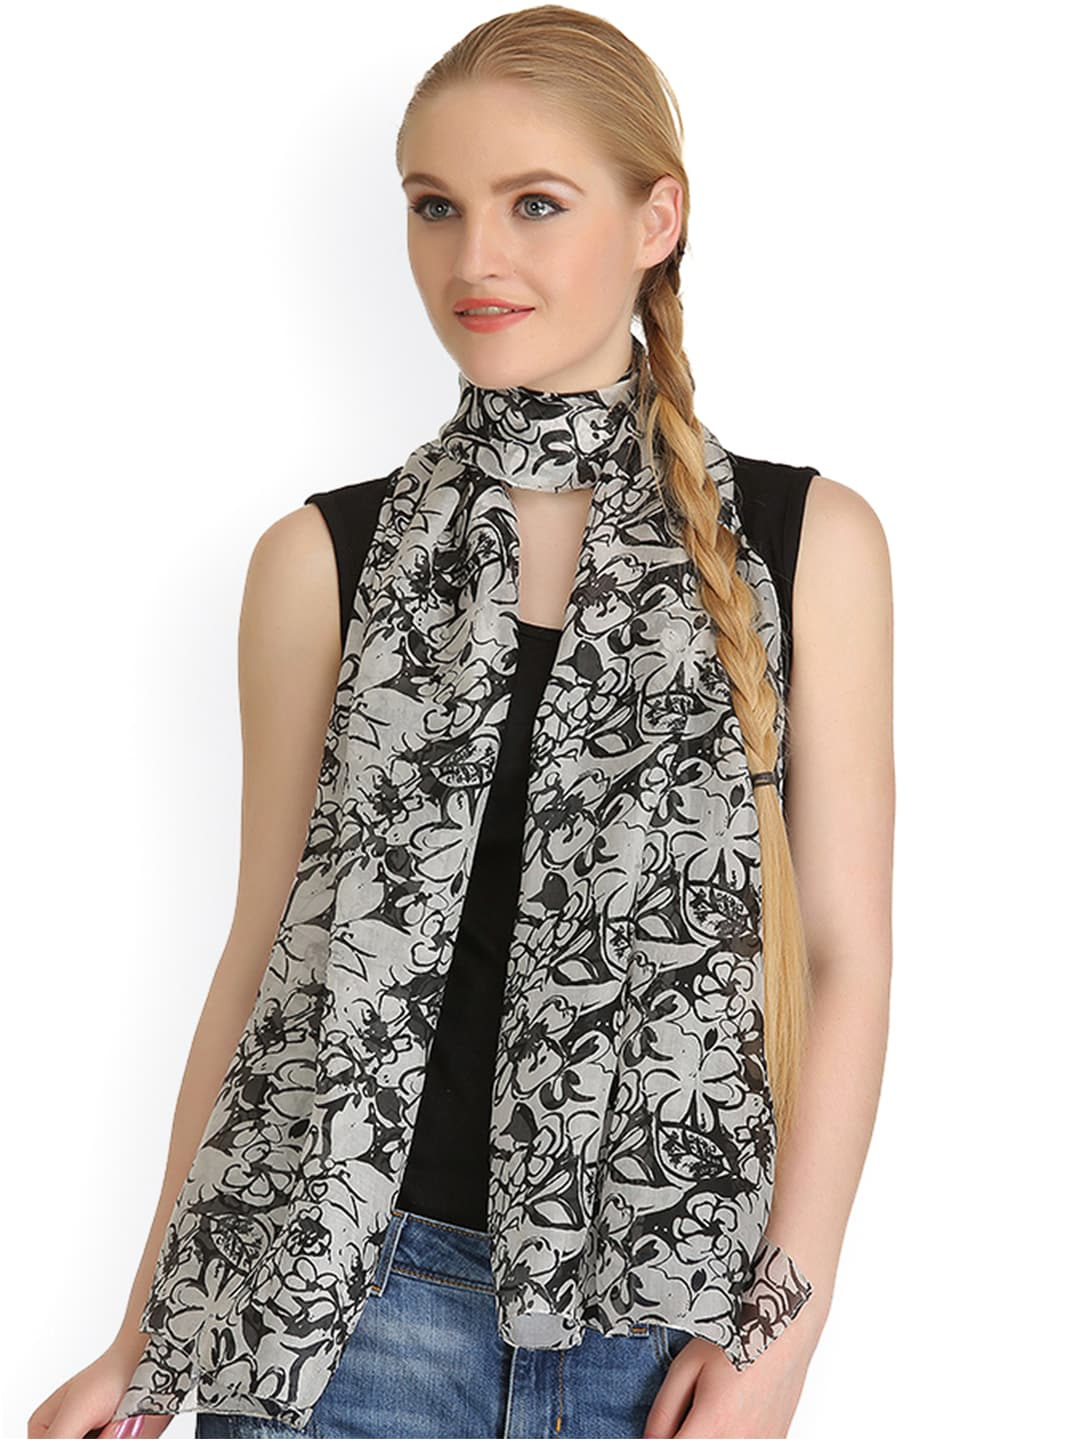 CoolThreads Off-White & Black Floral Print Silk Stole